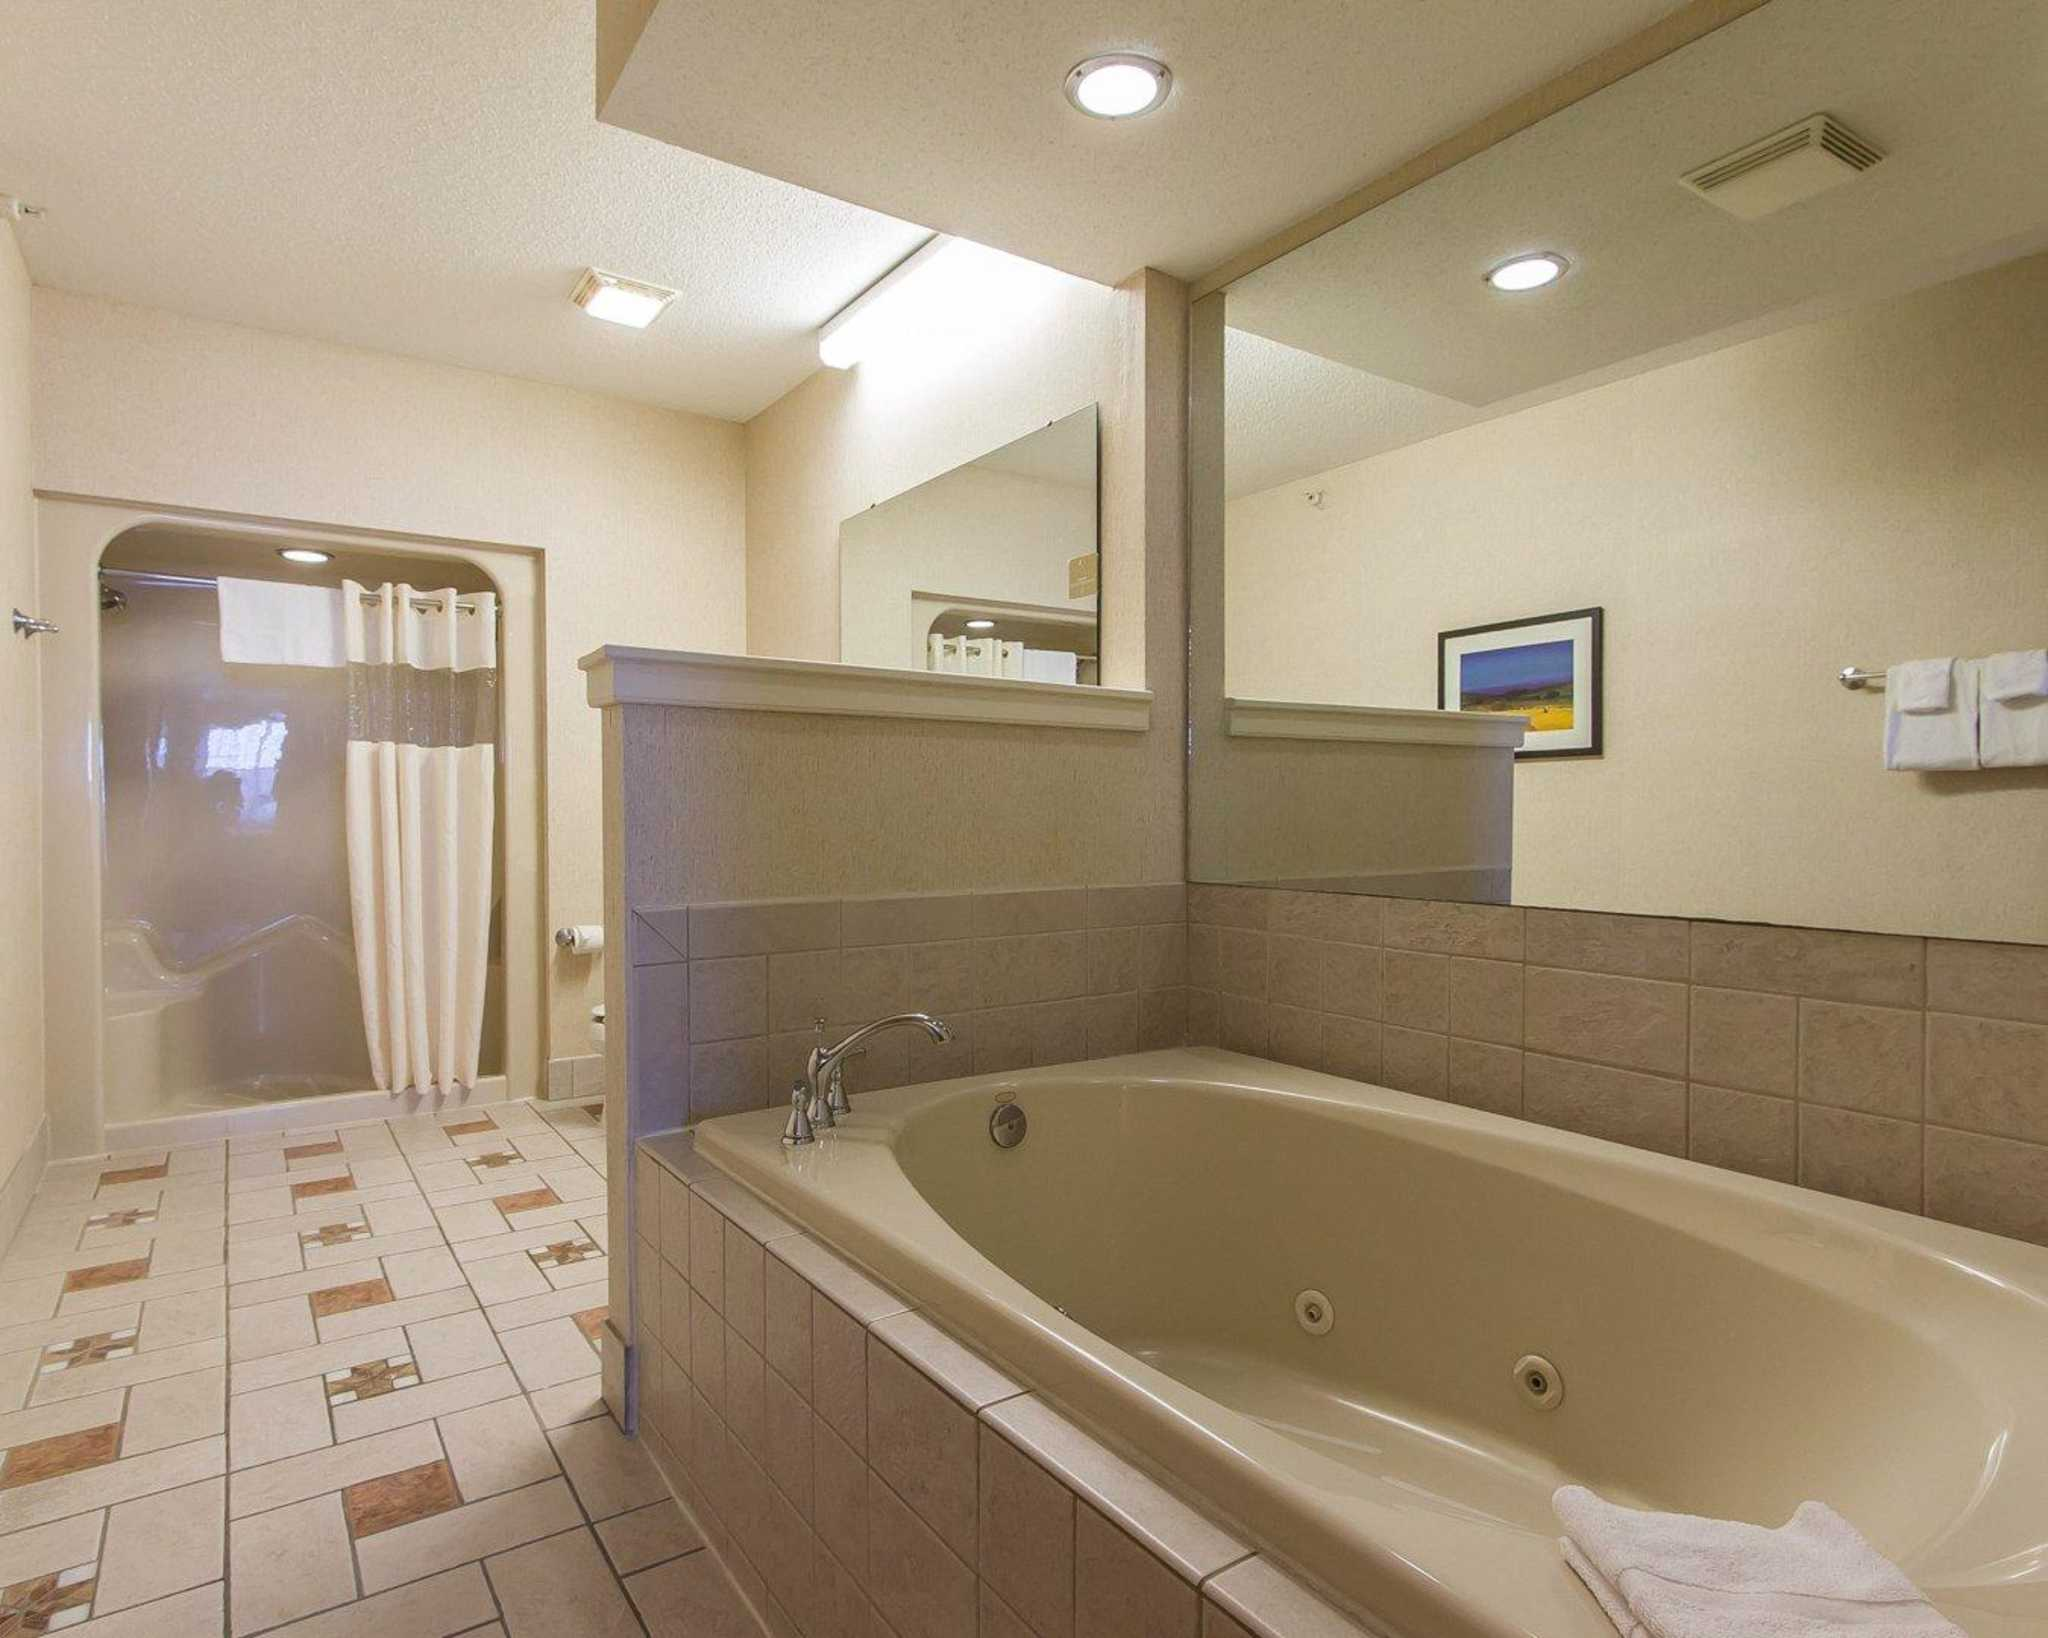 Poolside Hotel Rooms Des Moines Iowa